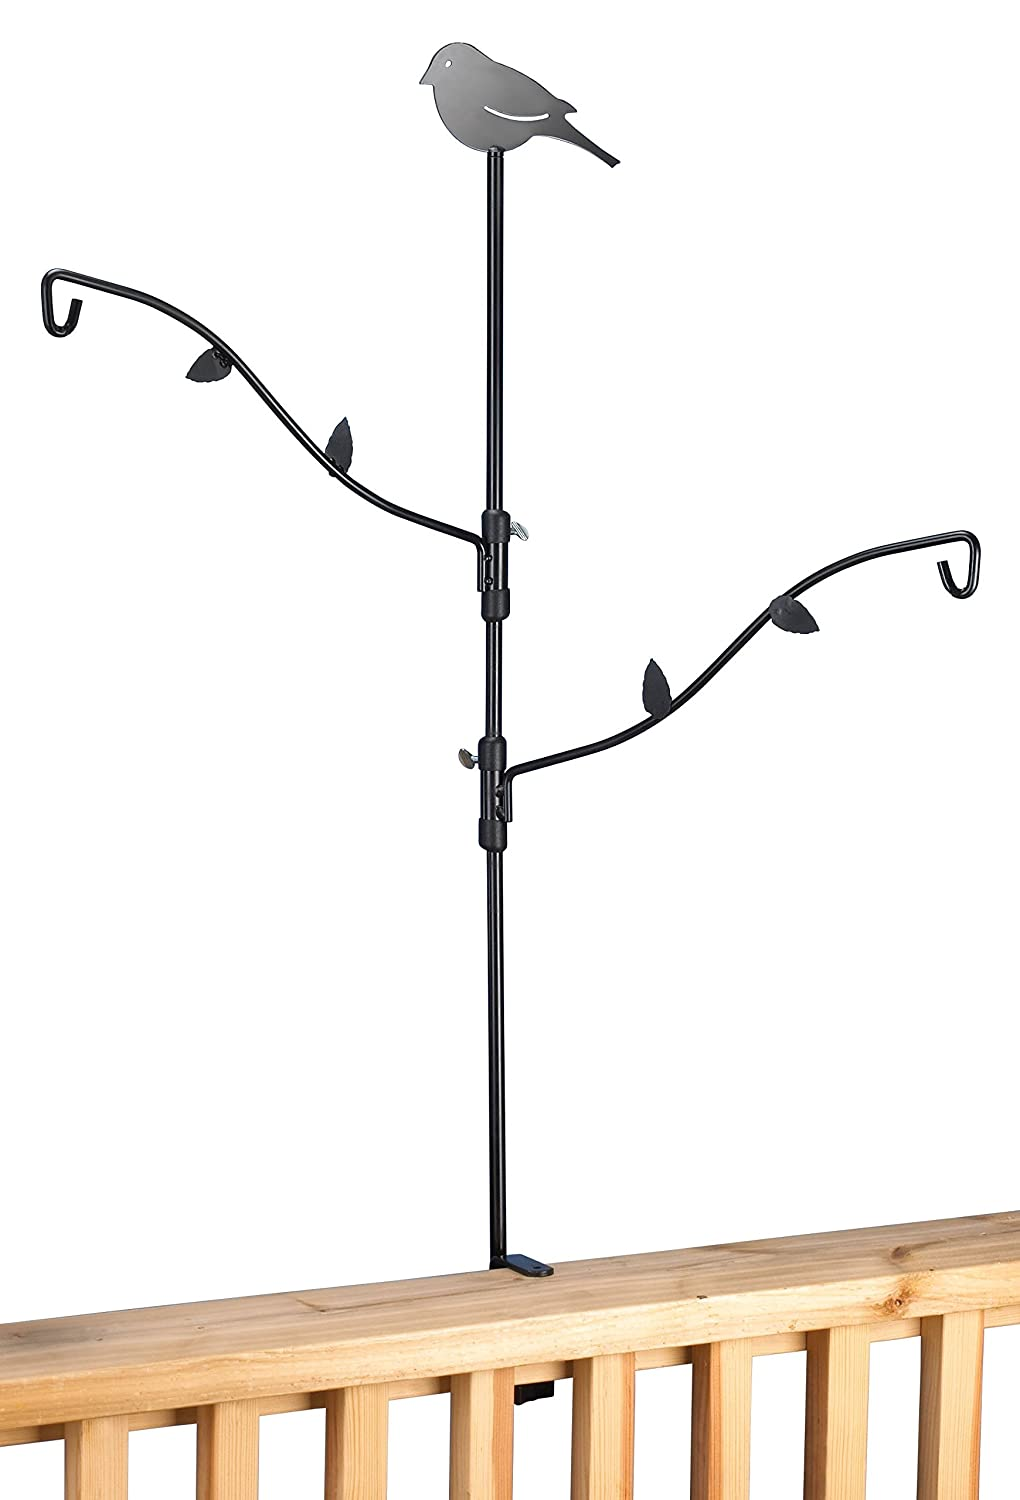 decks or feeder install for swing hanger feeders how hook hanging to bird hangers plants arm rod long a